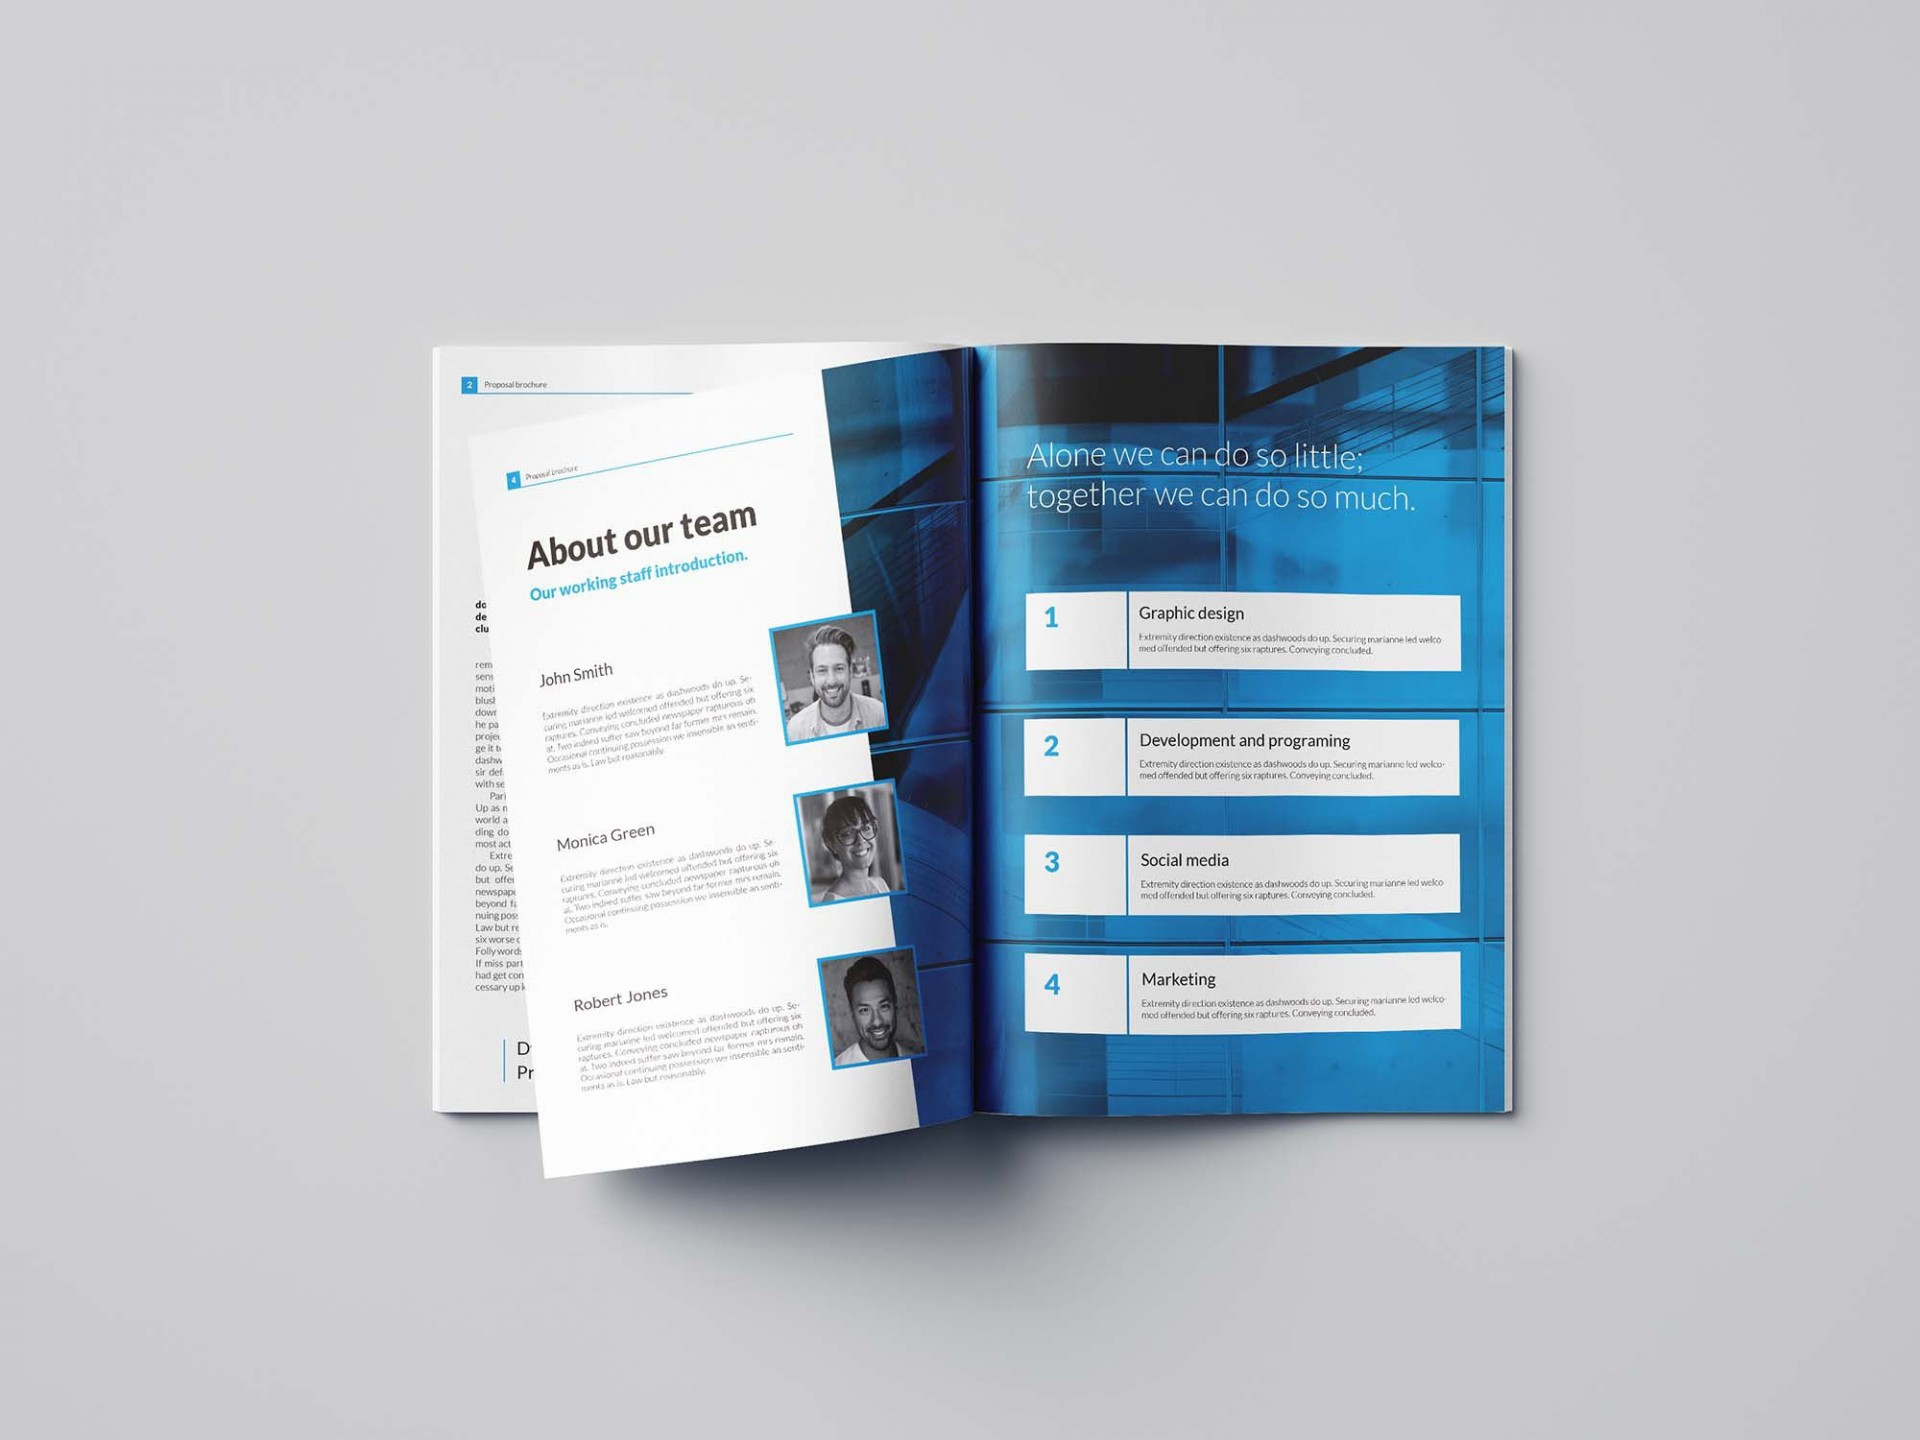 004 Surprising Free Busines Proposal Template Indesign High Resolution 1920